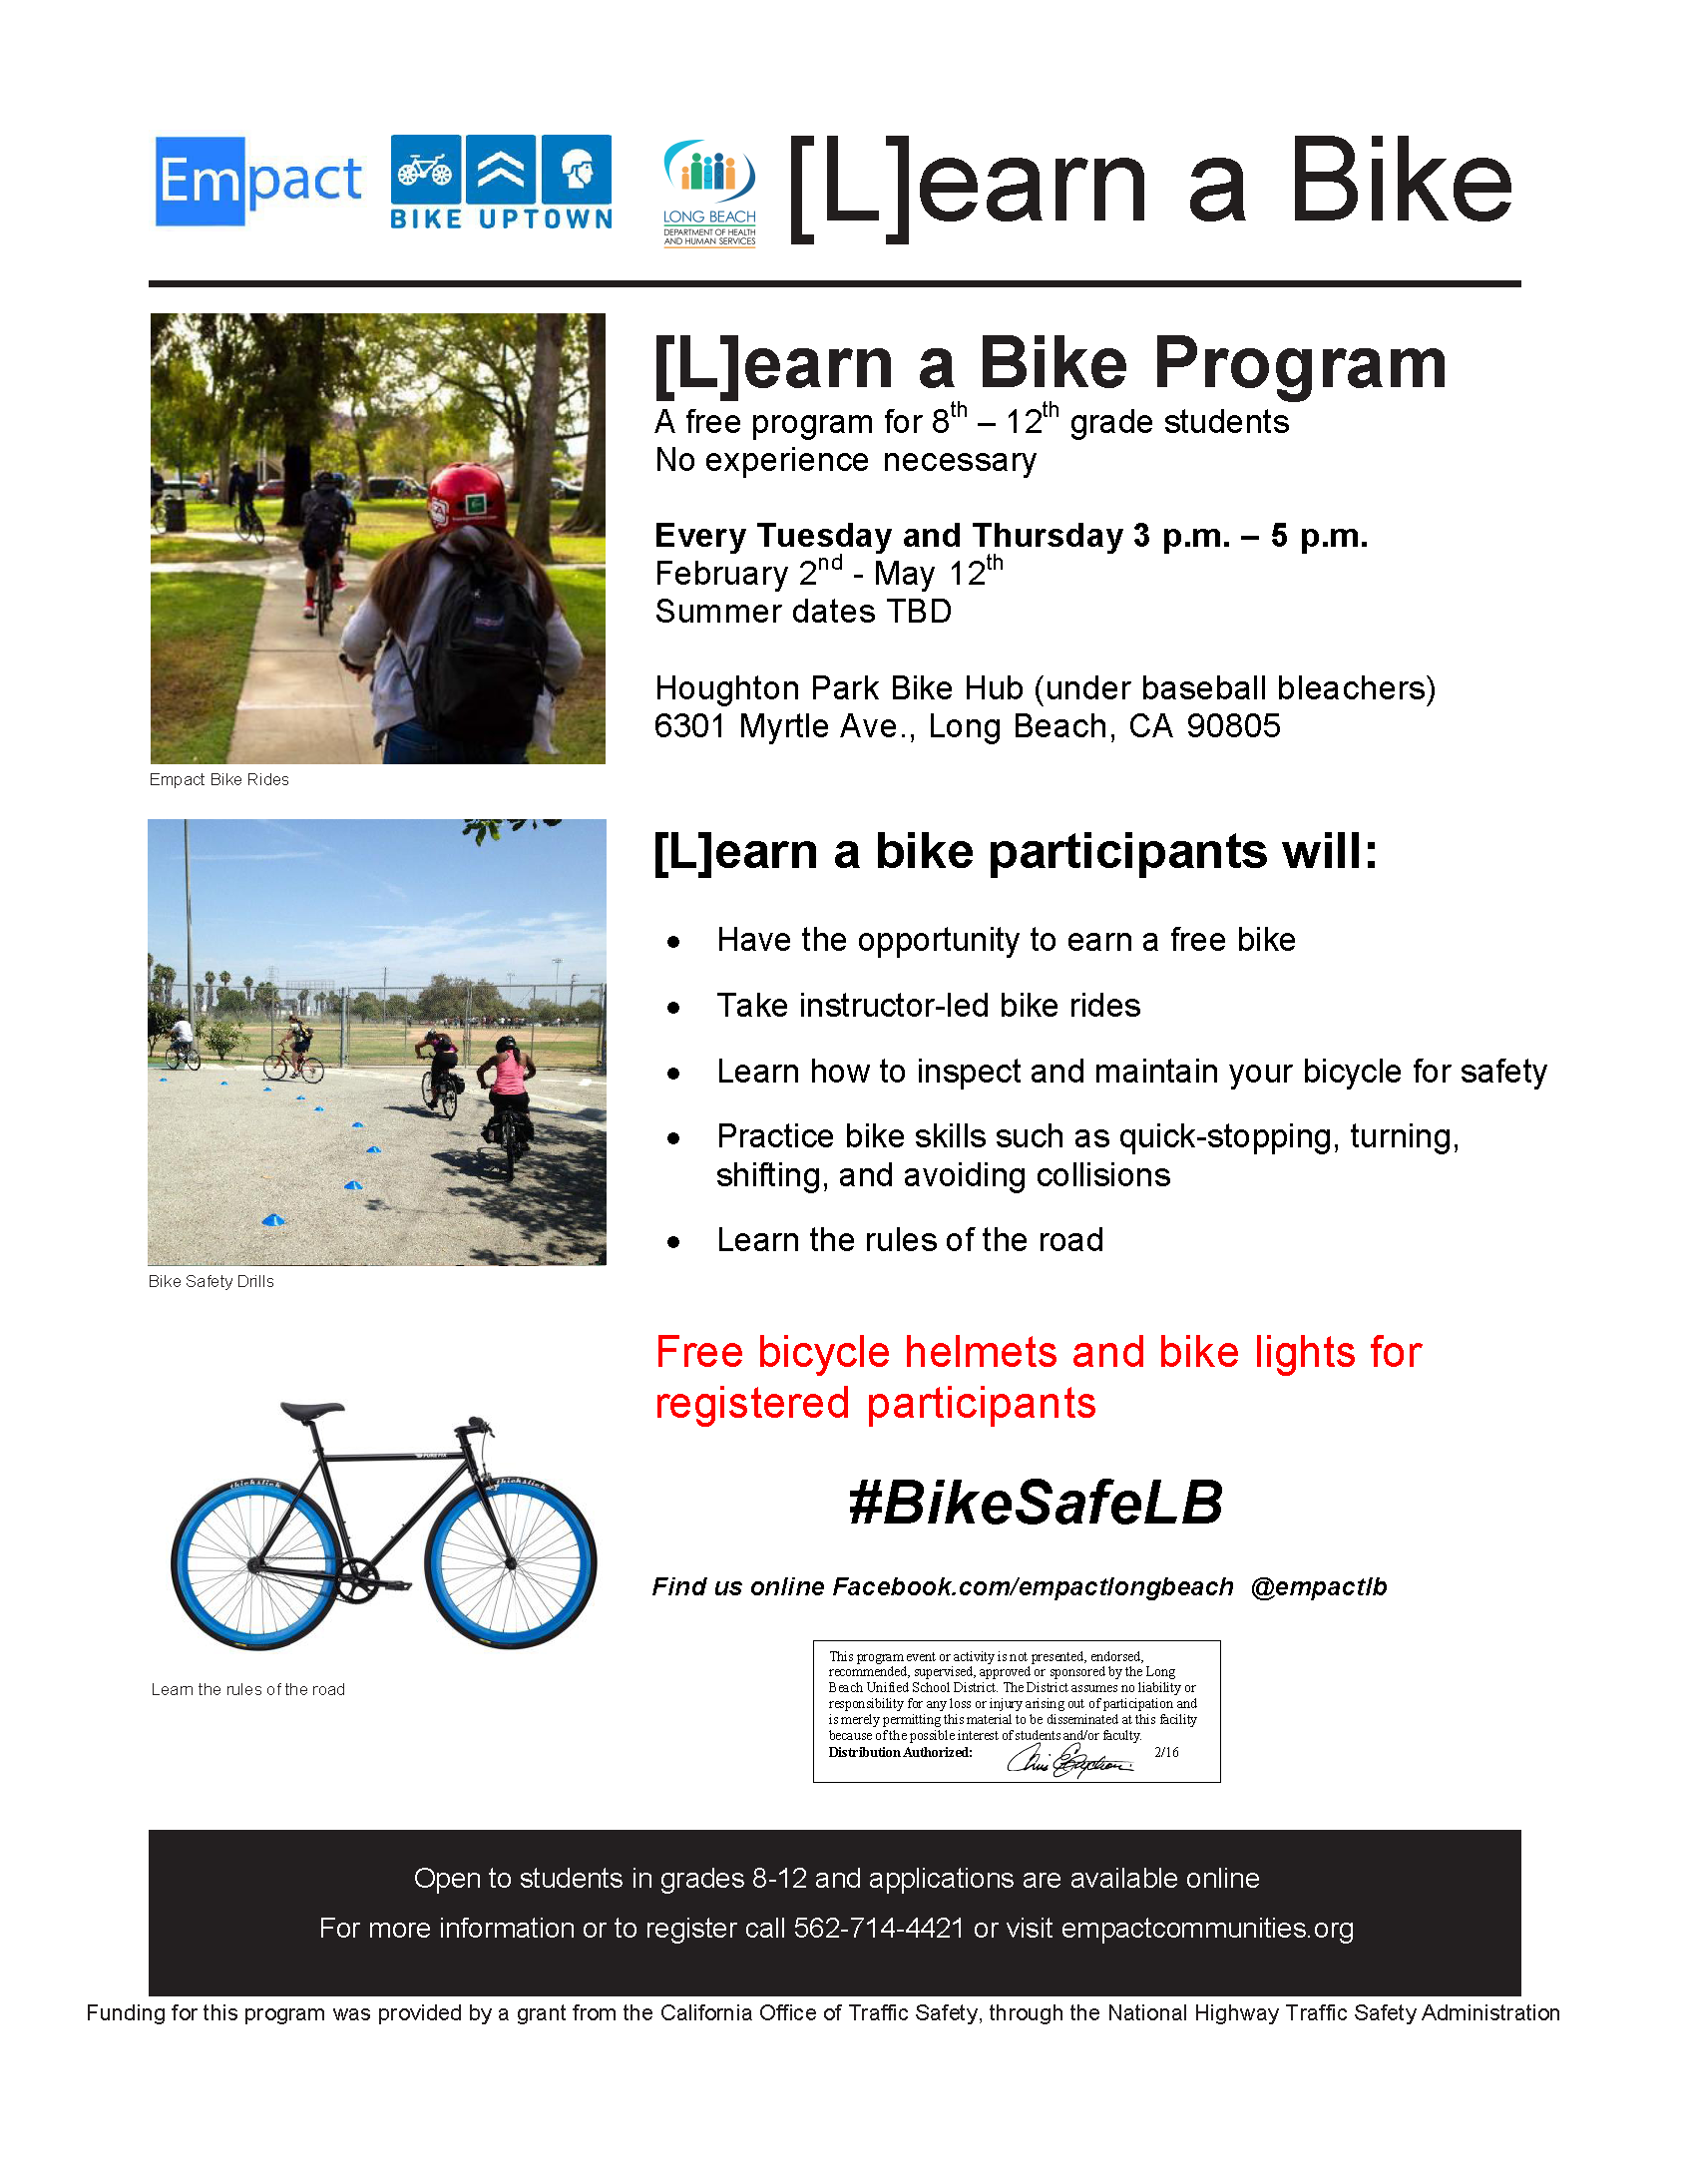 Empact_Bike_Flyer.png